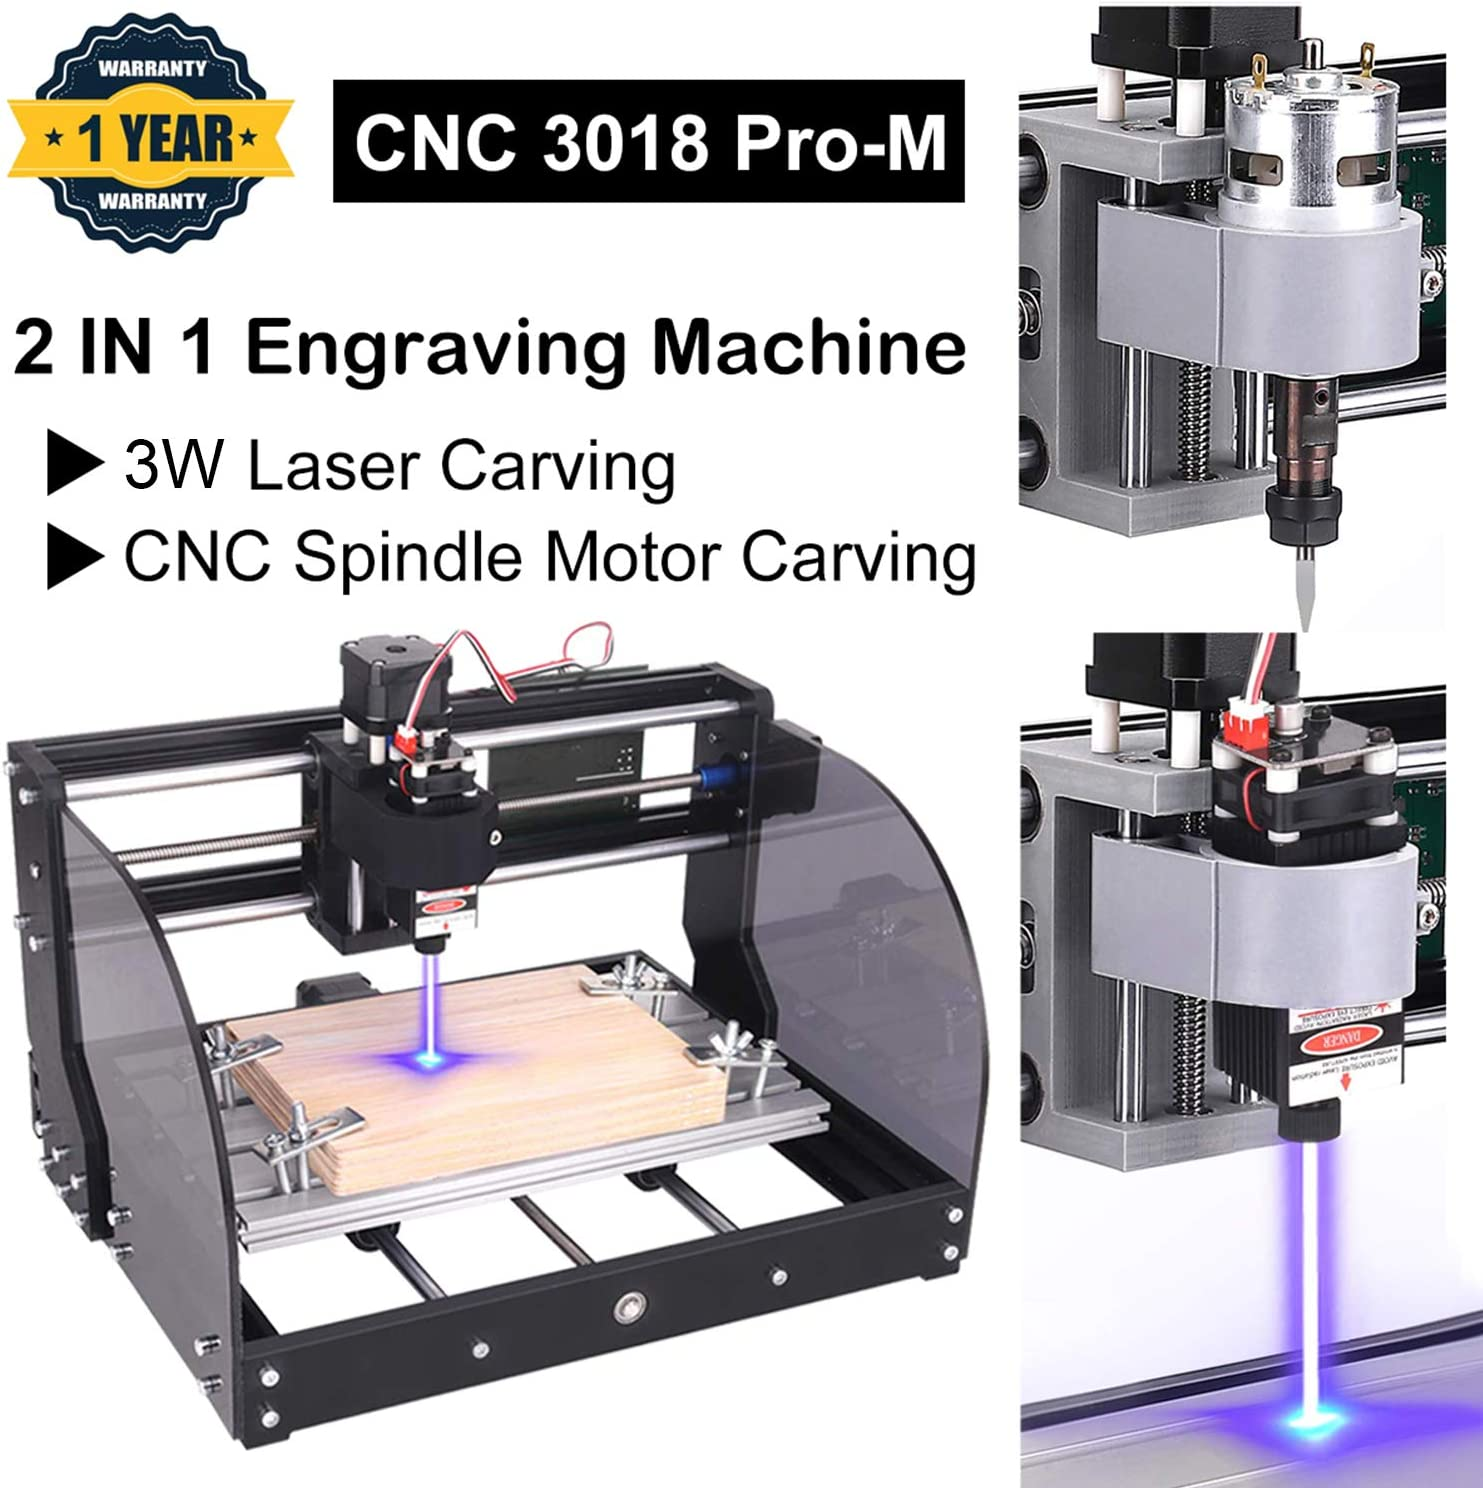 3W Upgrade CNC 3018 Pro-M GRBL Control DIY CNC Engraving Machine with Protected Board 3018-pro with Extension Rod ER11 Collet Set Yofuly 3 Axis PCB PVC Working Area 300x180x45mm